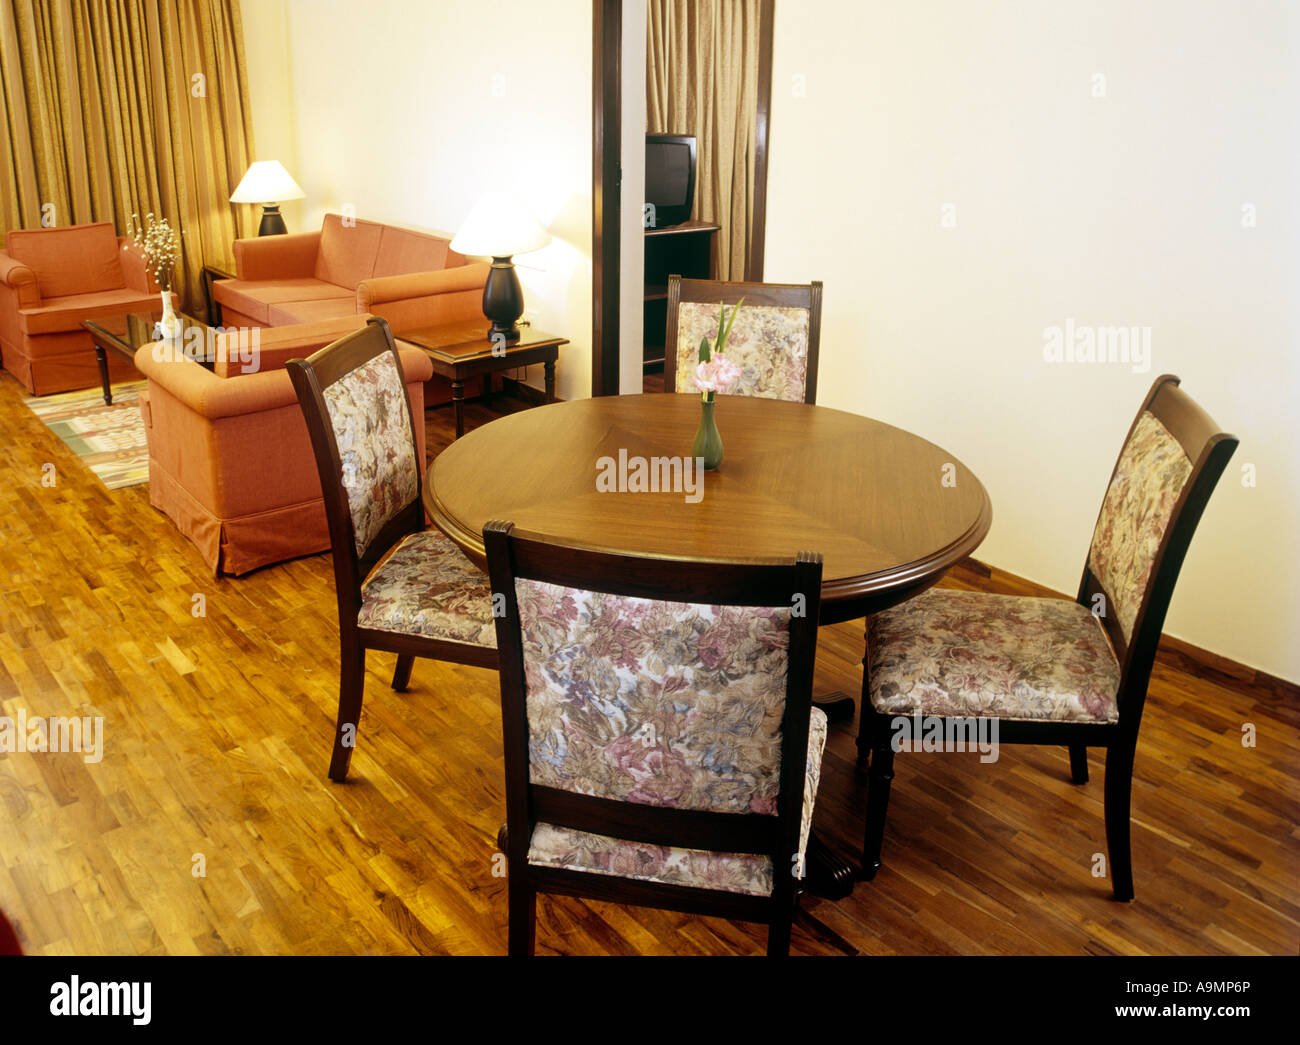 Sofa Set Images Kerala Sofaset Stock Photos Sofaset Stock Images Alamy